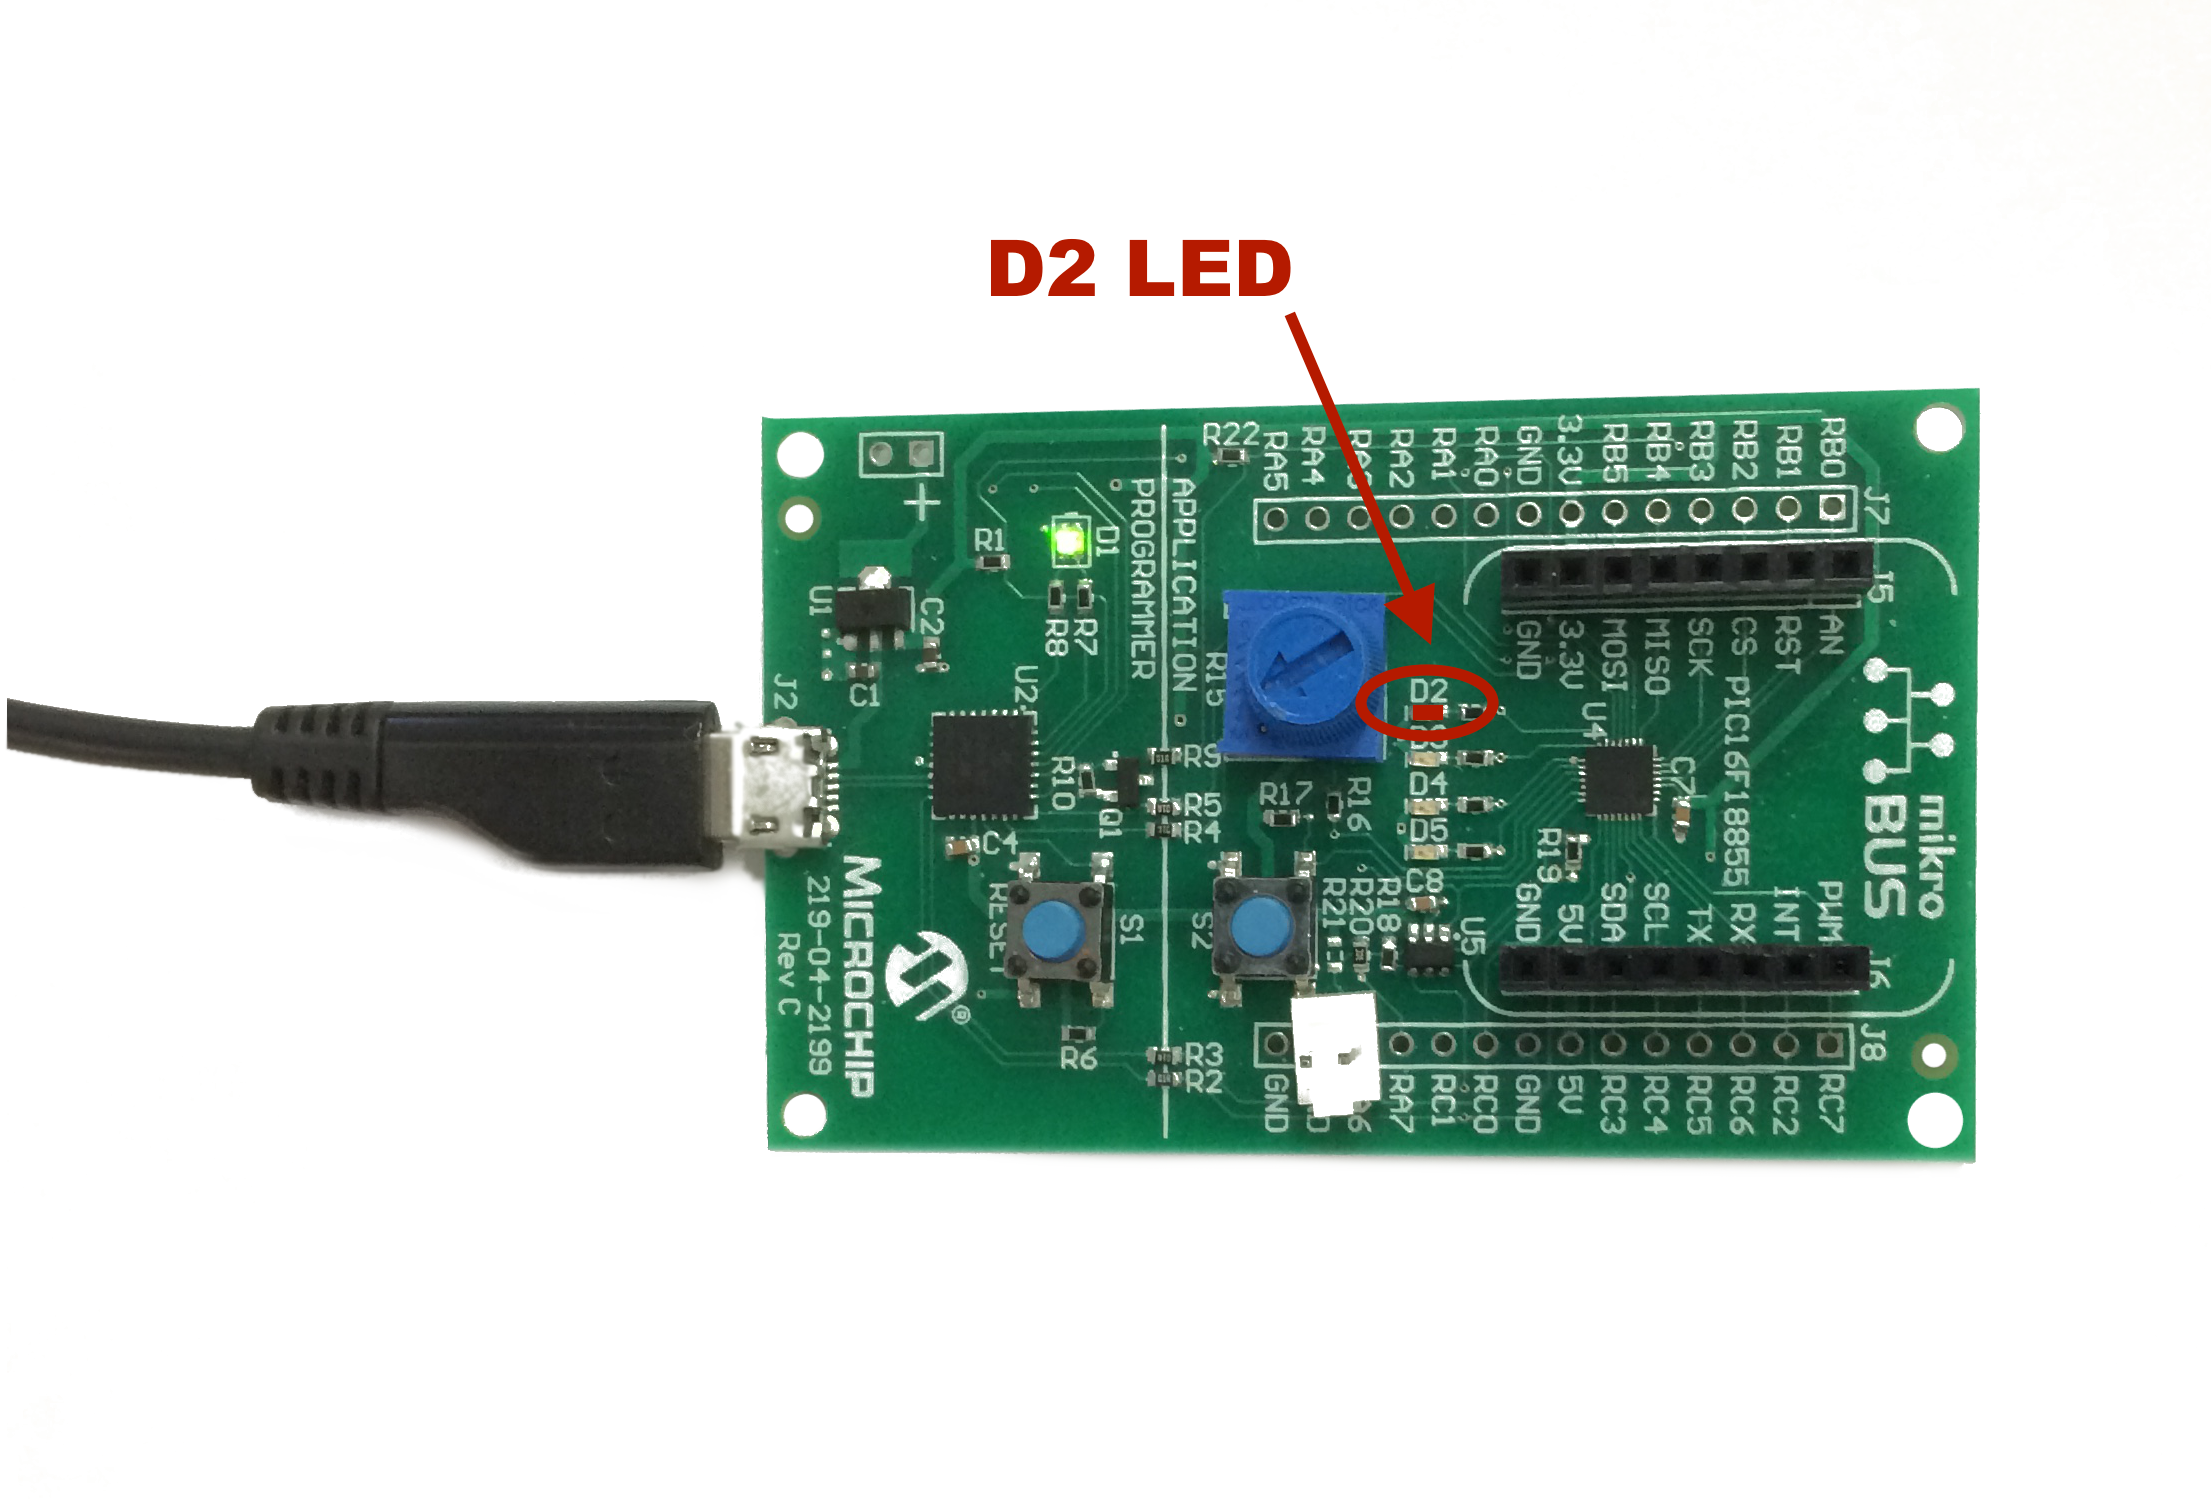 Hello World Light An Led Developer Help Engine Running Detection Electronics Forum Circuits Projects And In This Project Emitting Diode Is Turned On By The Pic16f18855 Microcontroller Using Xpress Development Board Platform